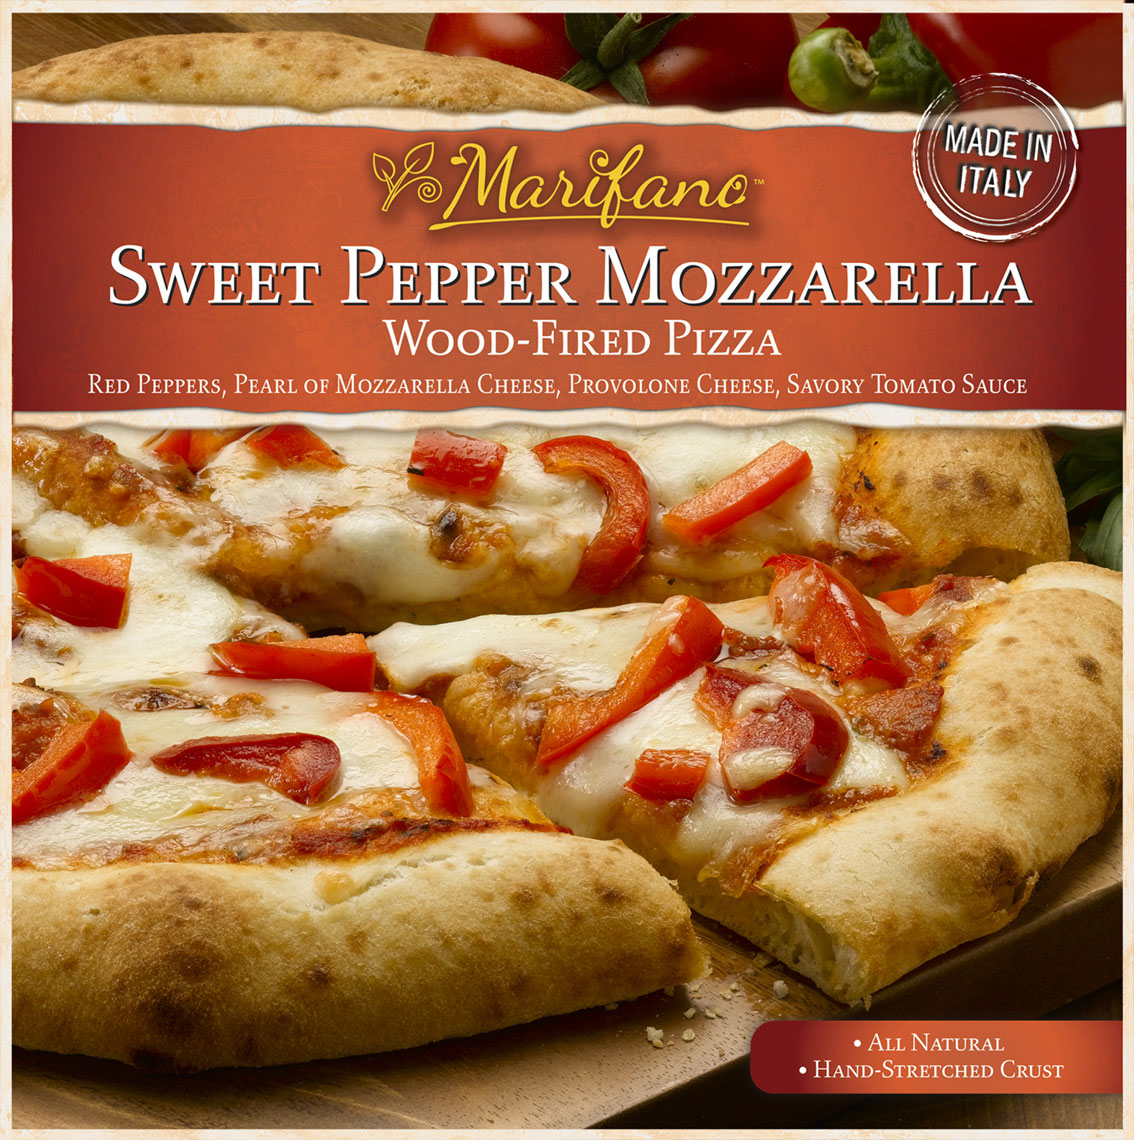 Sweet Pepper & Mozzarella Pizza Packaging Photo